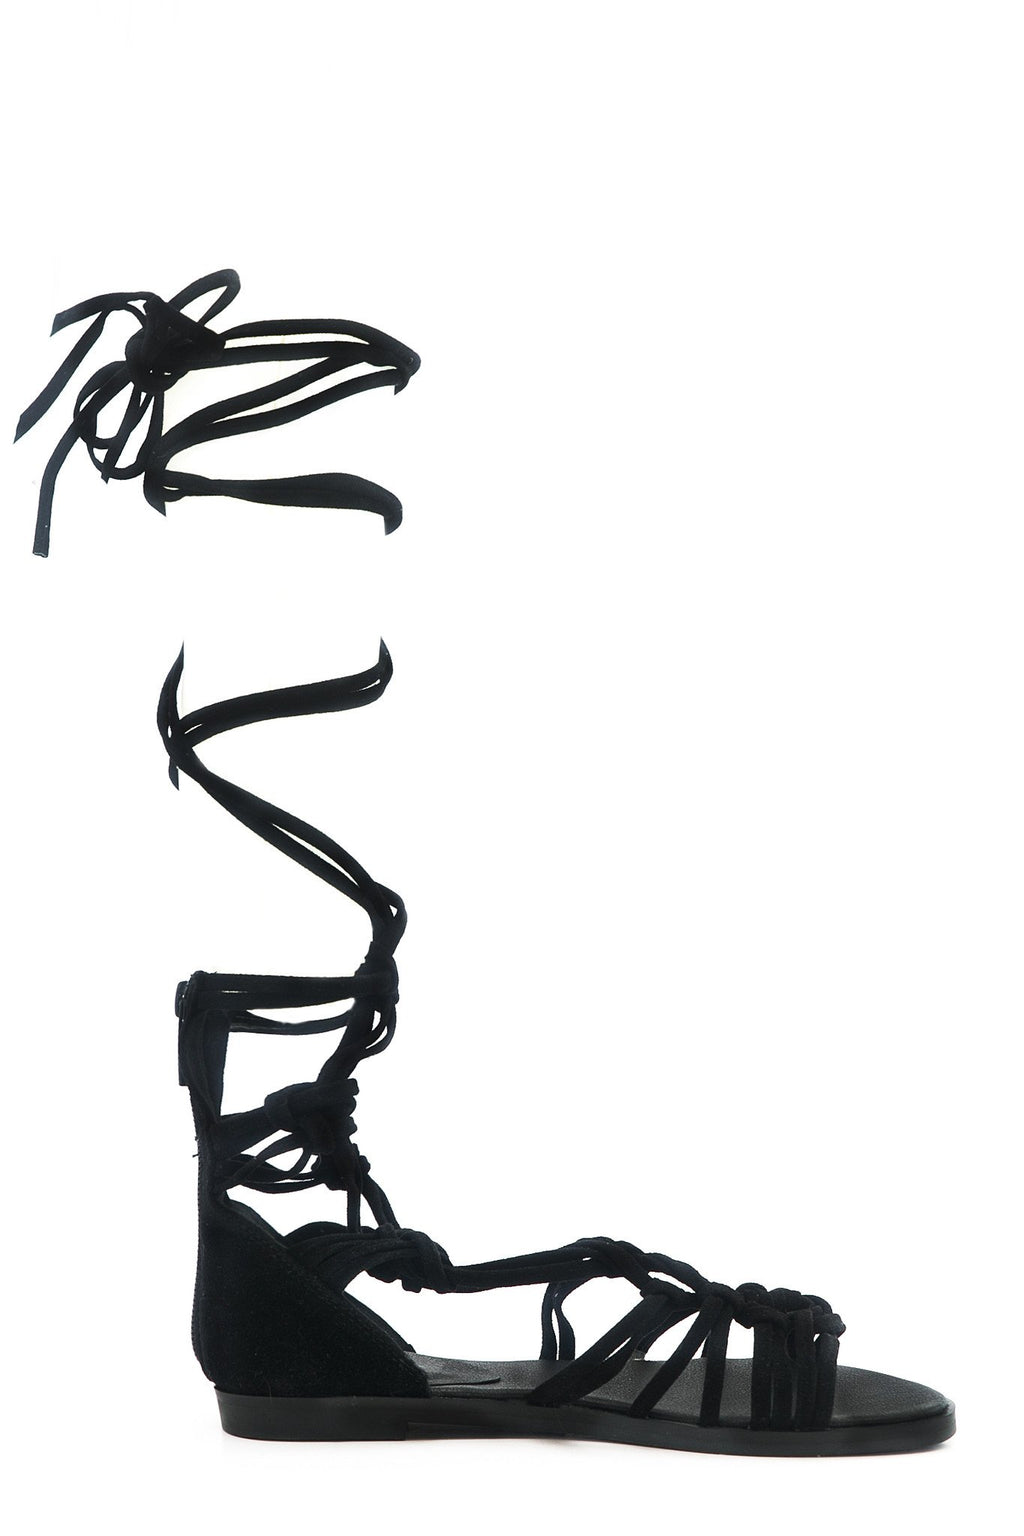 Lesly Lace-Up Gladiator Sandal - Haute & Rebellious